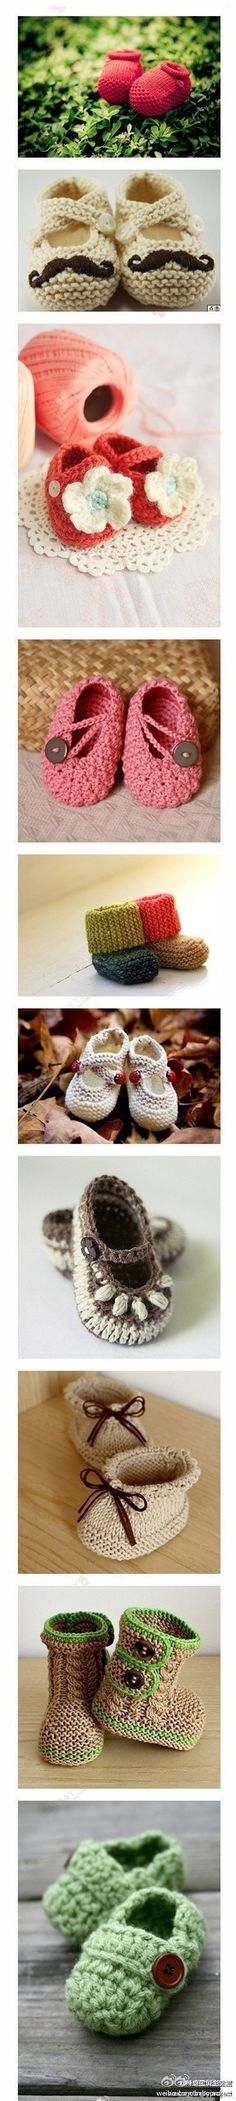 Crochet baby booties designs are often a great source of inspiration for beginners.I have come across several baby booties crochet tutorials and patterns Crotchet Baby Shoes, Crochet Shoes, Crochet Slippers, Knit Crochet, Baby Slippers, Knitting Projects, Crochet Projects, Knitting Patterns, Crochet Patterns